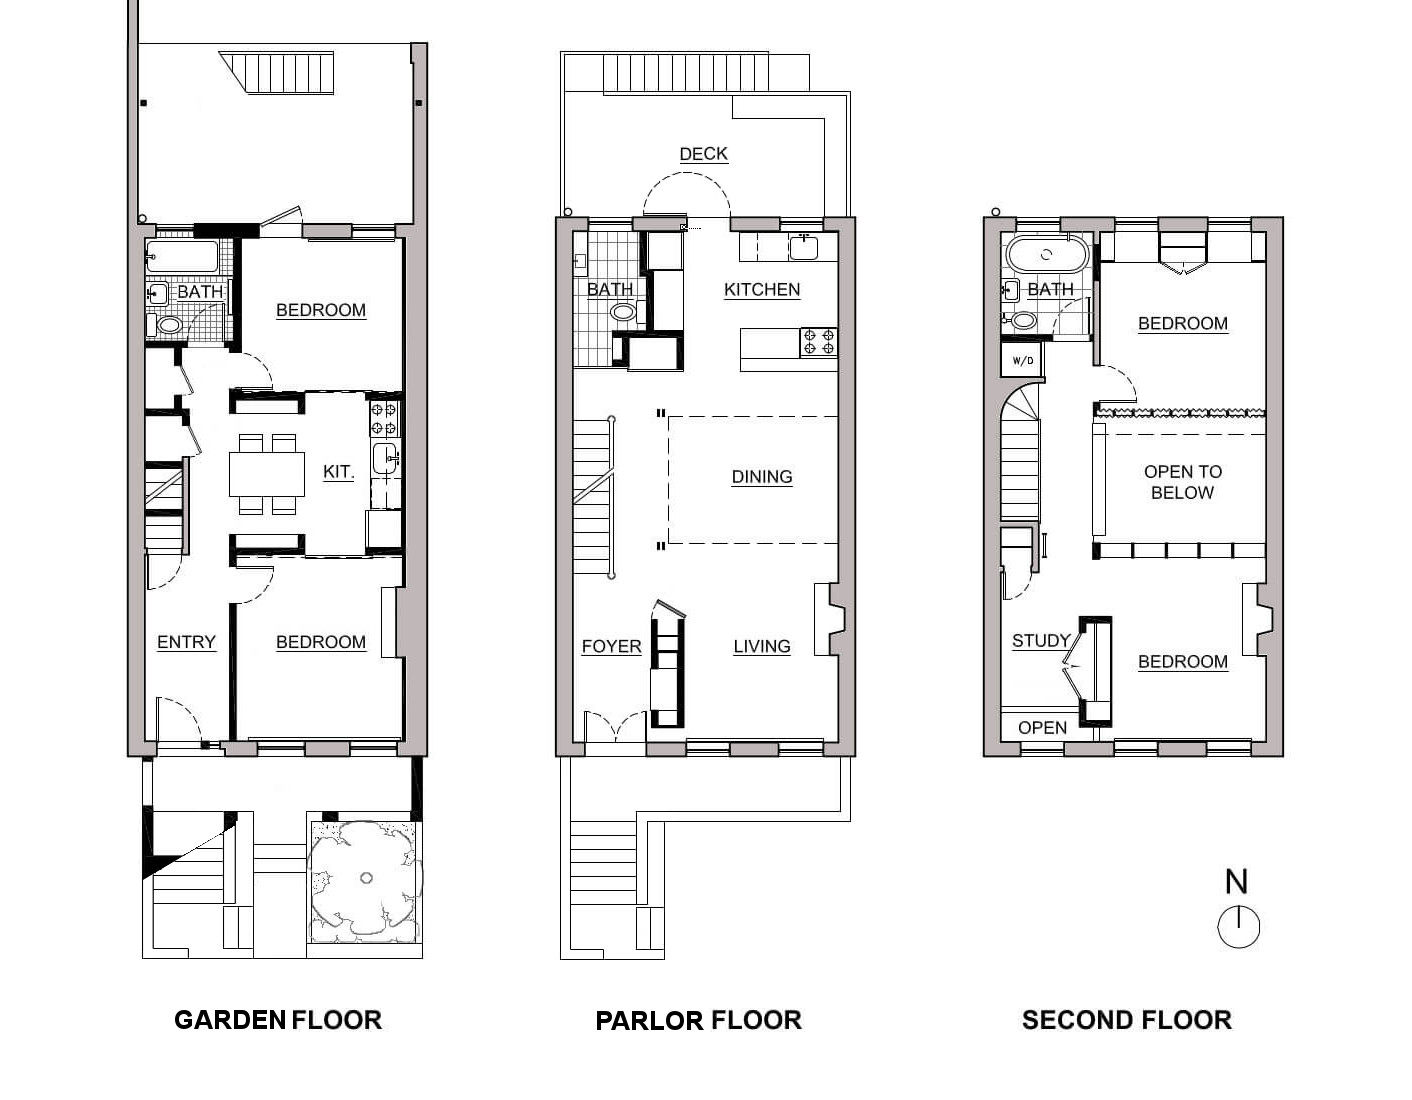 Brownstone Row House Floor Plans